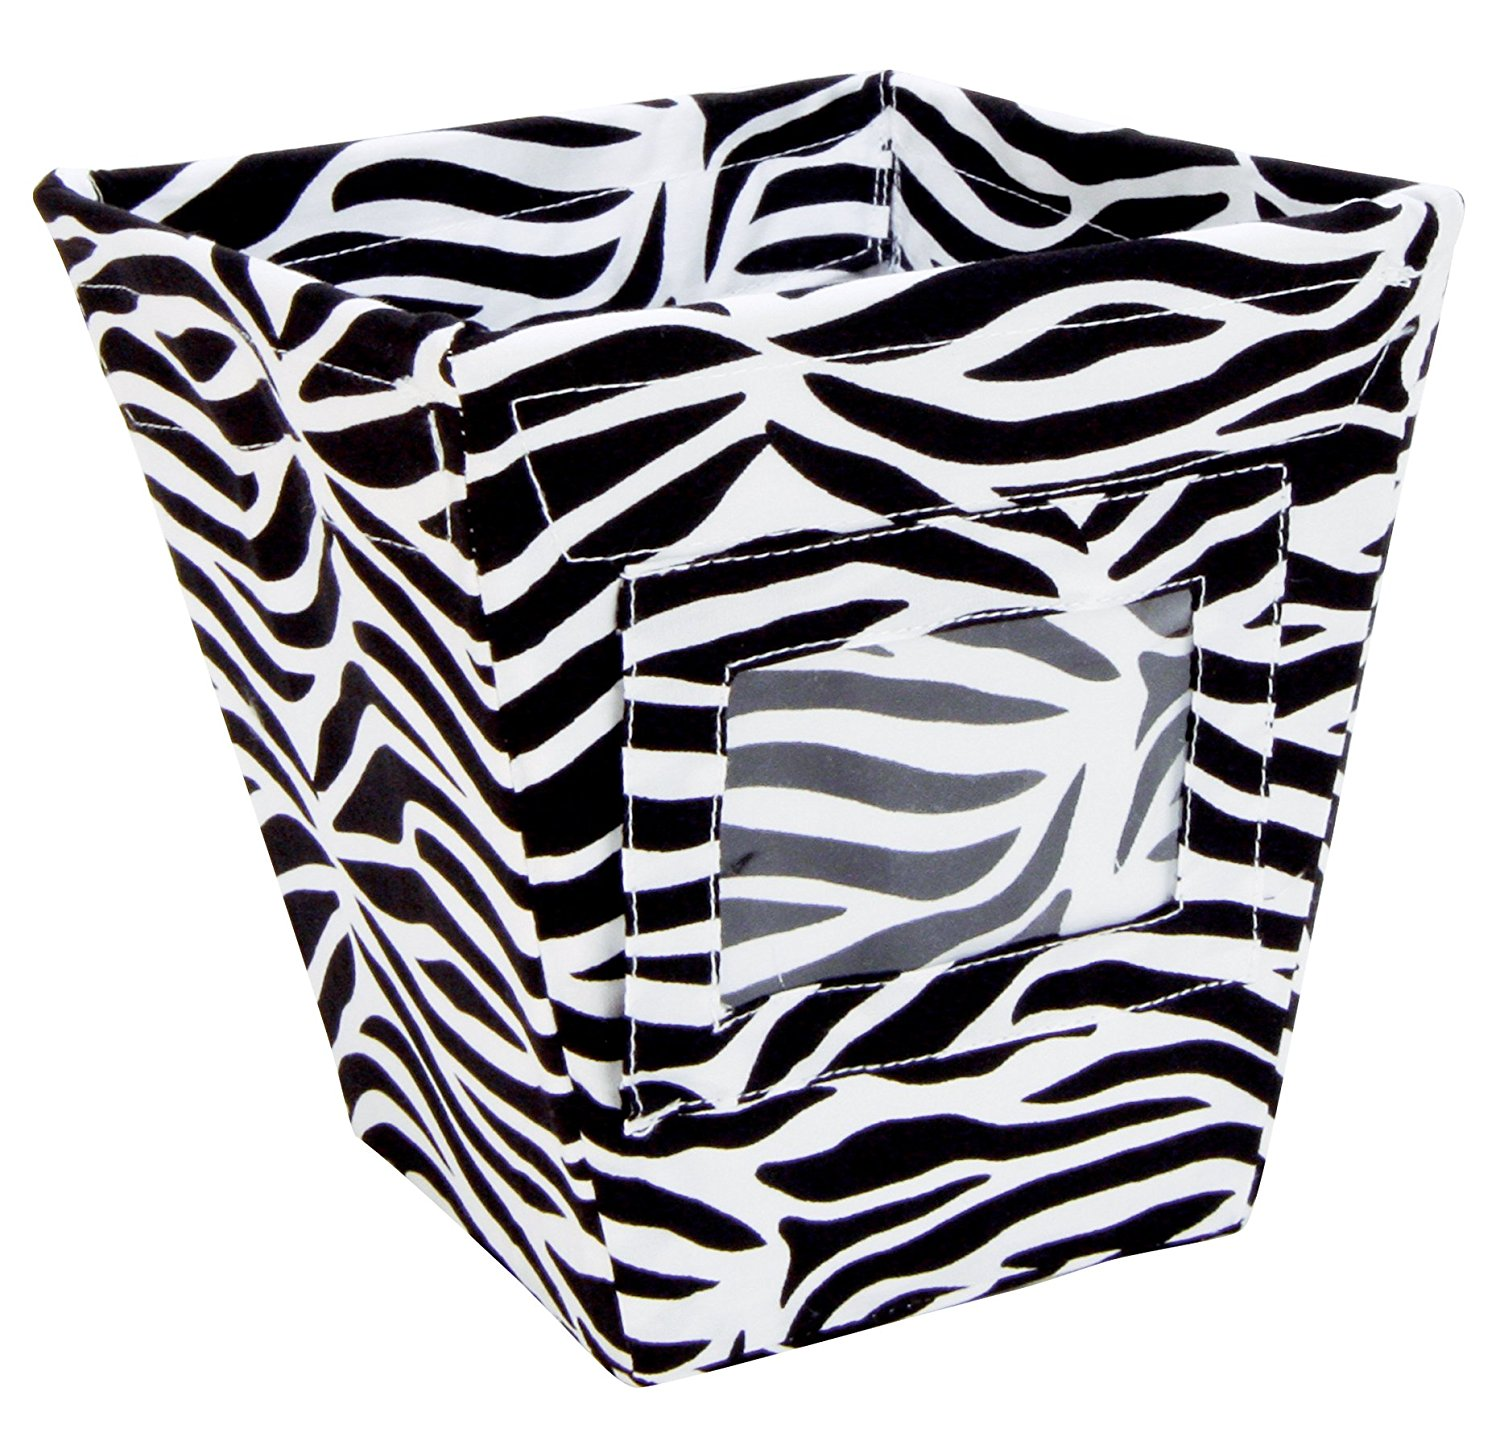 Delicieux Fabric Storage Bin, Zebra Print, Small, Warning: This Is Not A Toy. For  Decorative Storage Use Only. Please Use Parental Caution. By Trend Lab